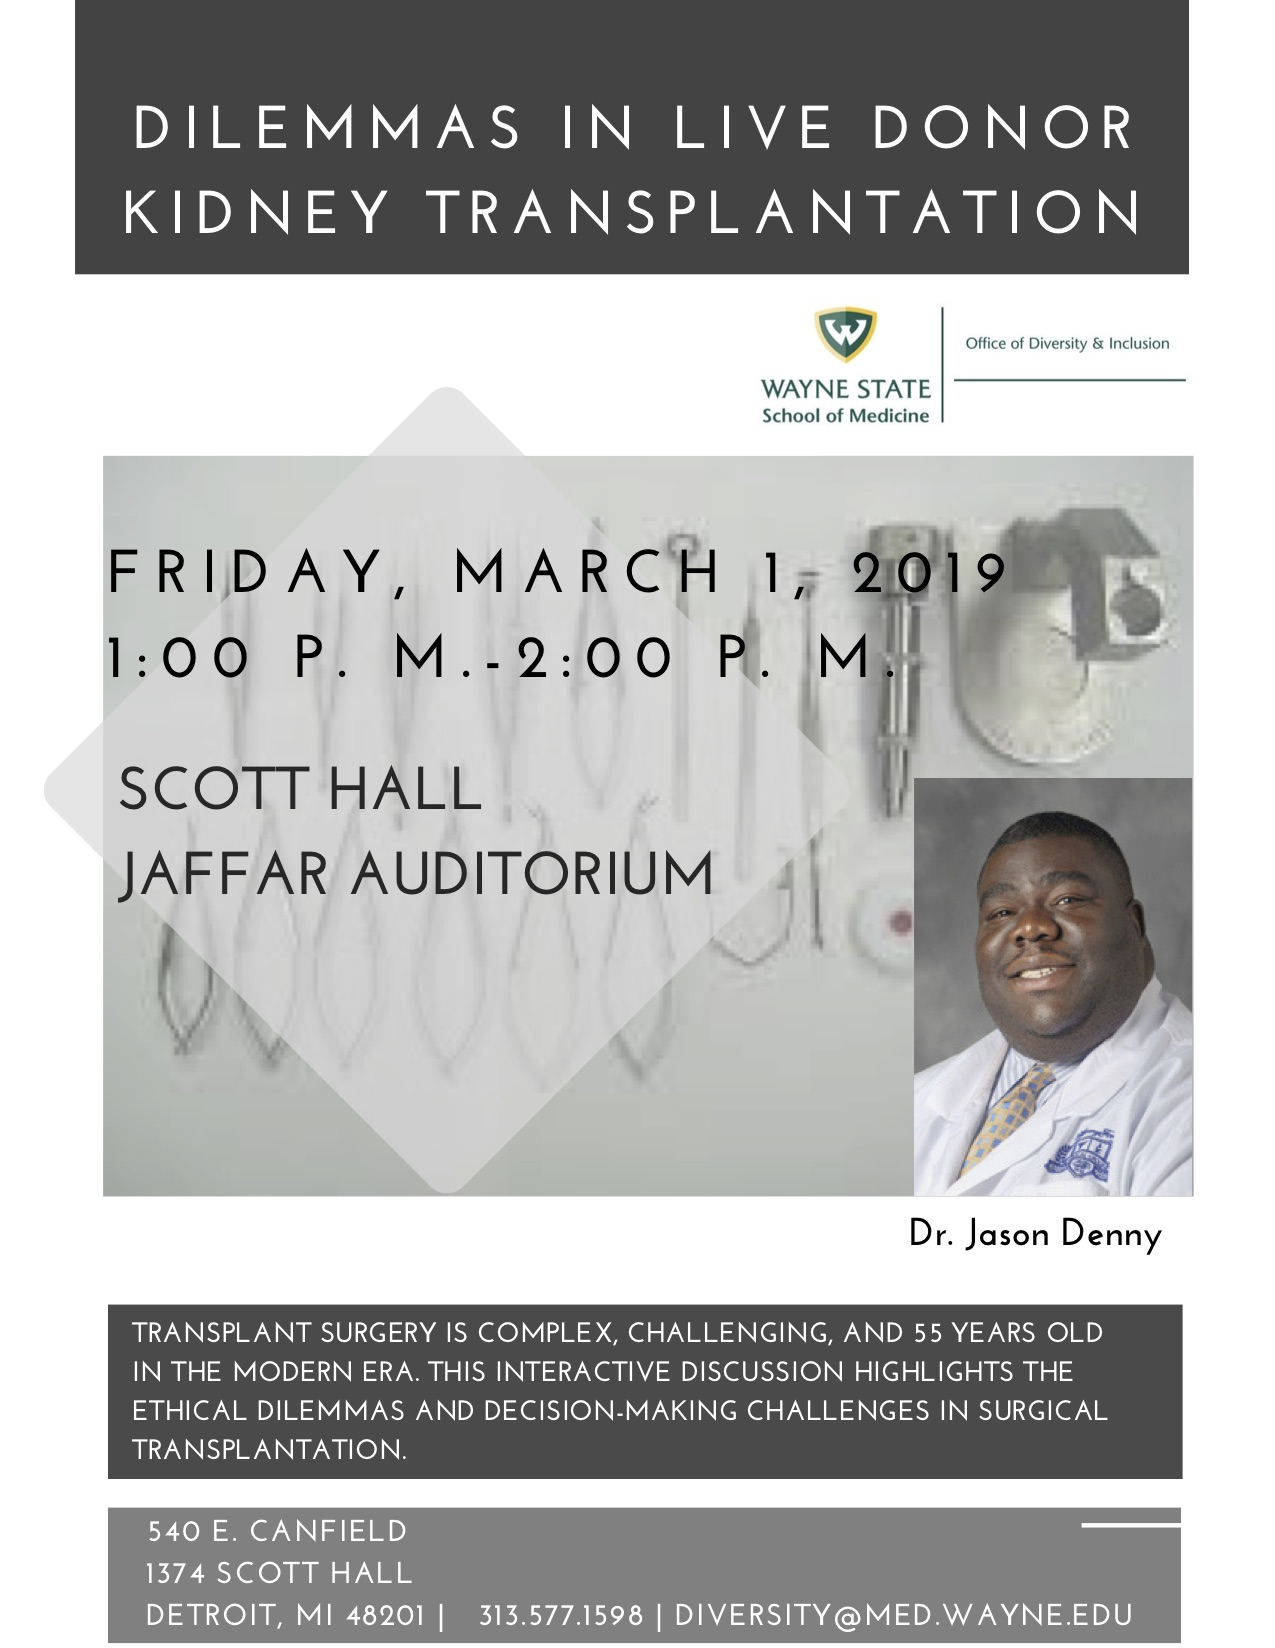 Surgeon to discuss complexity of ethics in transplant surgery